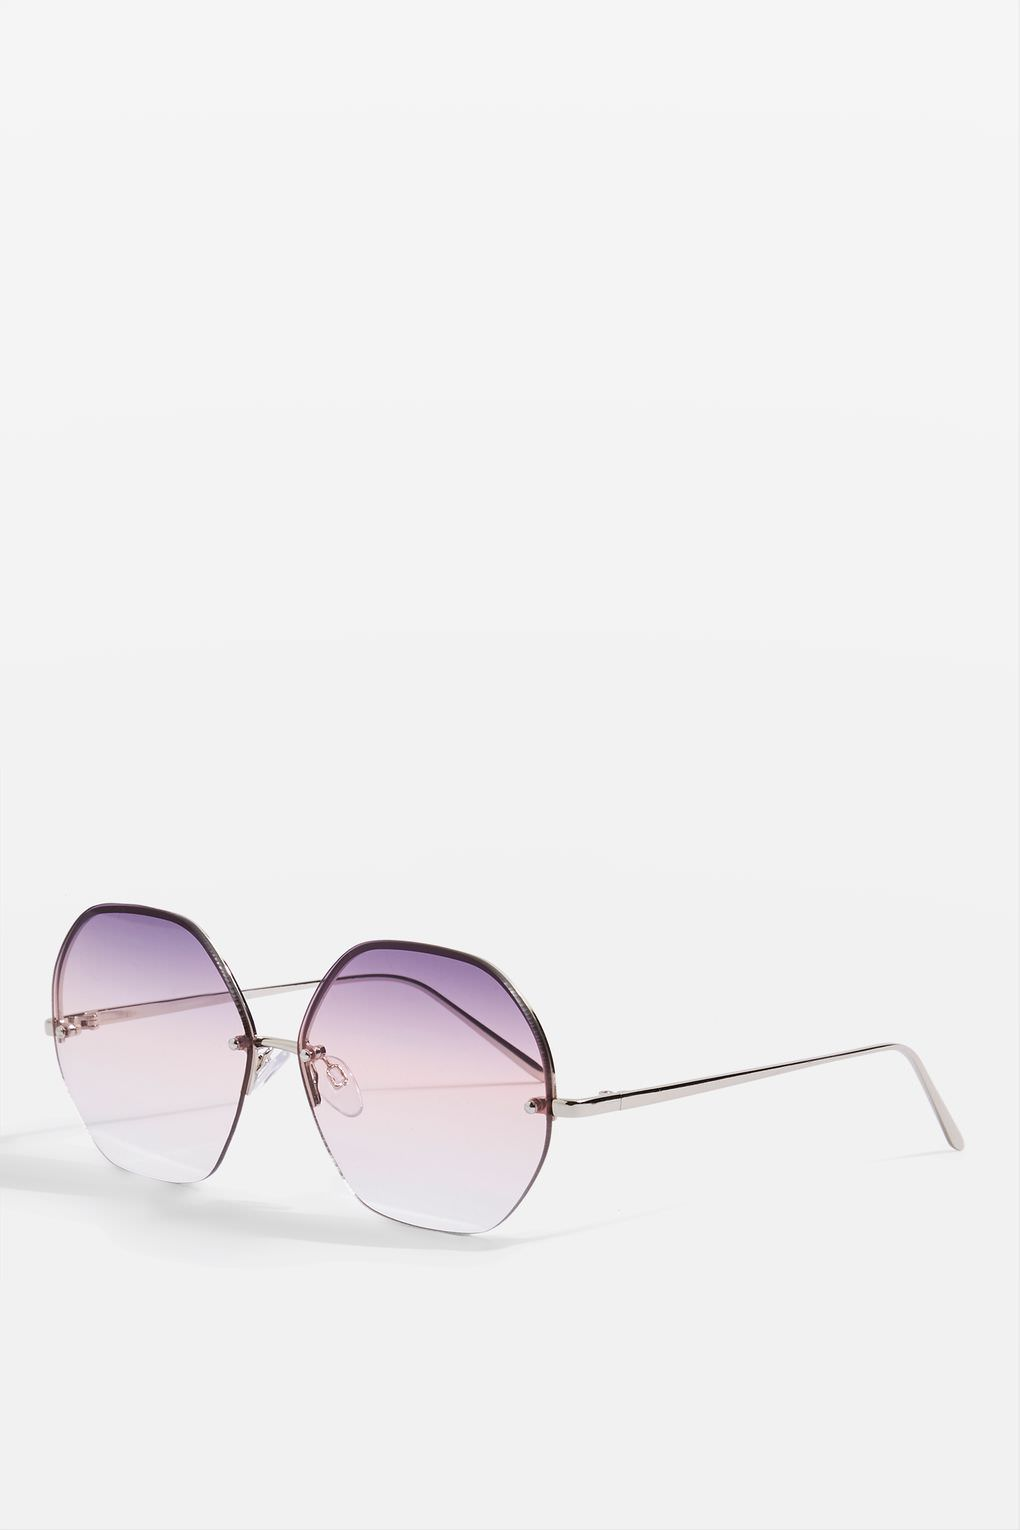 New Topshop Outfit Post, Sunglasses Accessories